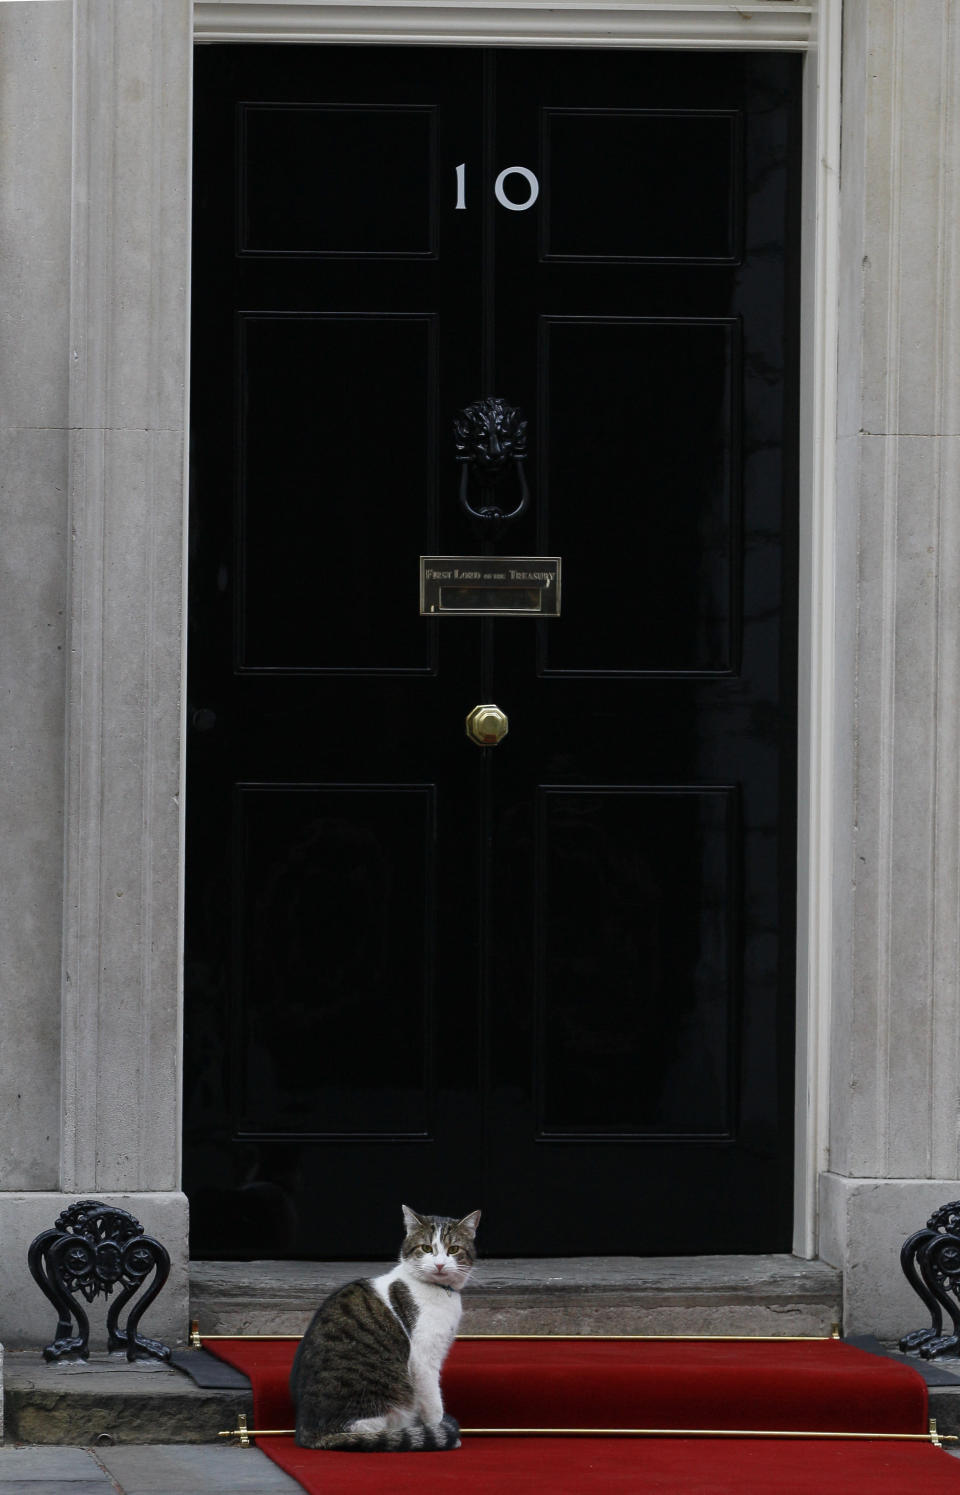 FILE - In this Monday, Jan. 16, 2012 file photo, Larry the cat sits on the red carpet as he awaits Palestinian President Mahmoud Abbas at Downing Street in London. Monday, Feb. 15, 2021 marks the 10th anniversary of rescue cat Larry becoming Chief Mouser to the Cabinet Office in a bid to deal with a rat problem at 10 Downing Street. (AP Photo/Kirsty Wigglesworth, file)